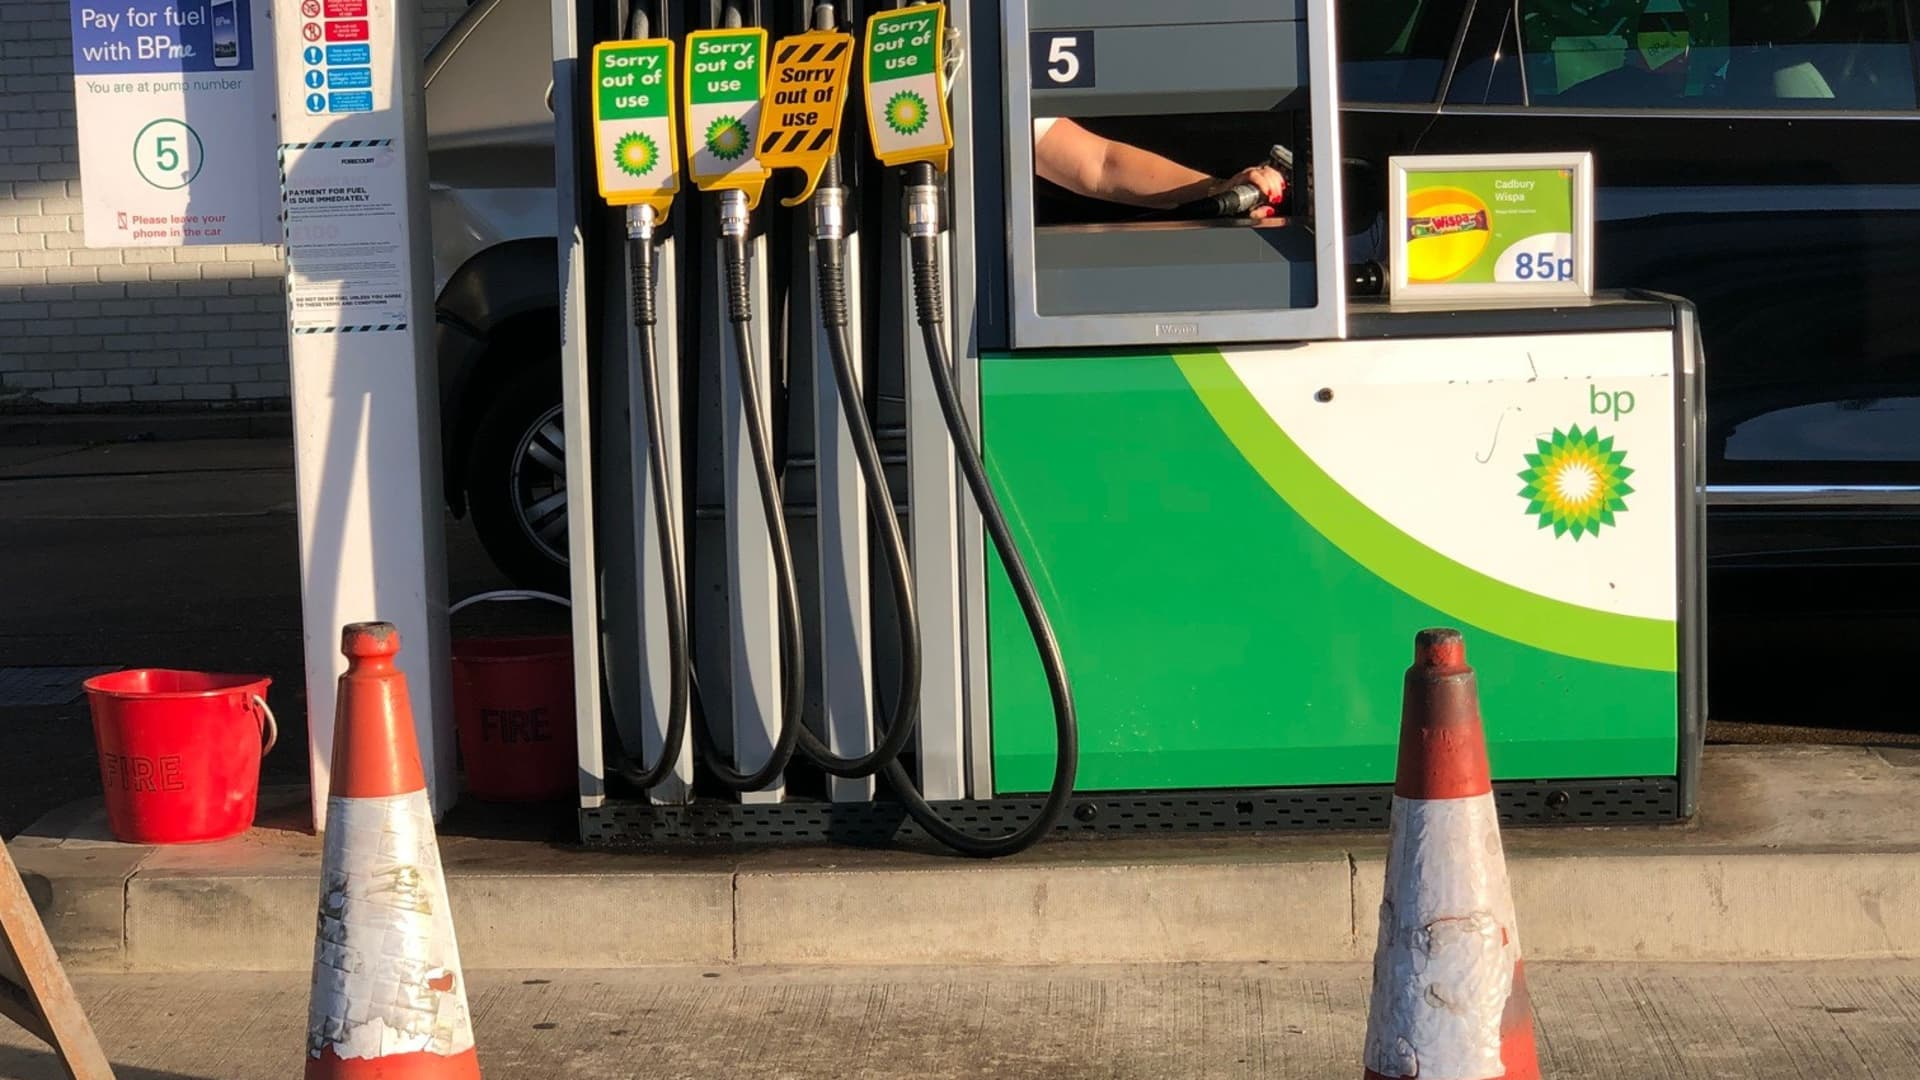 Gasoline pumps out of use as drivers panic buy fuel at a BP gas station in southeast London, U.K., on 26 September 2021.